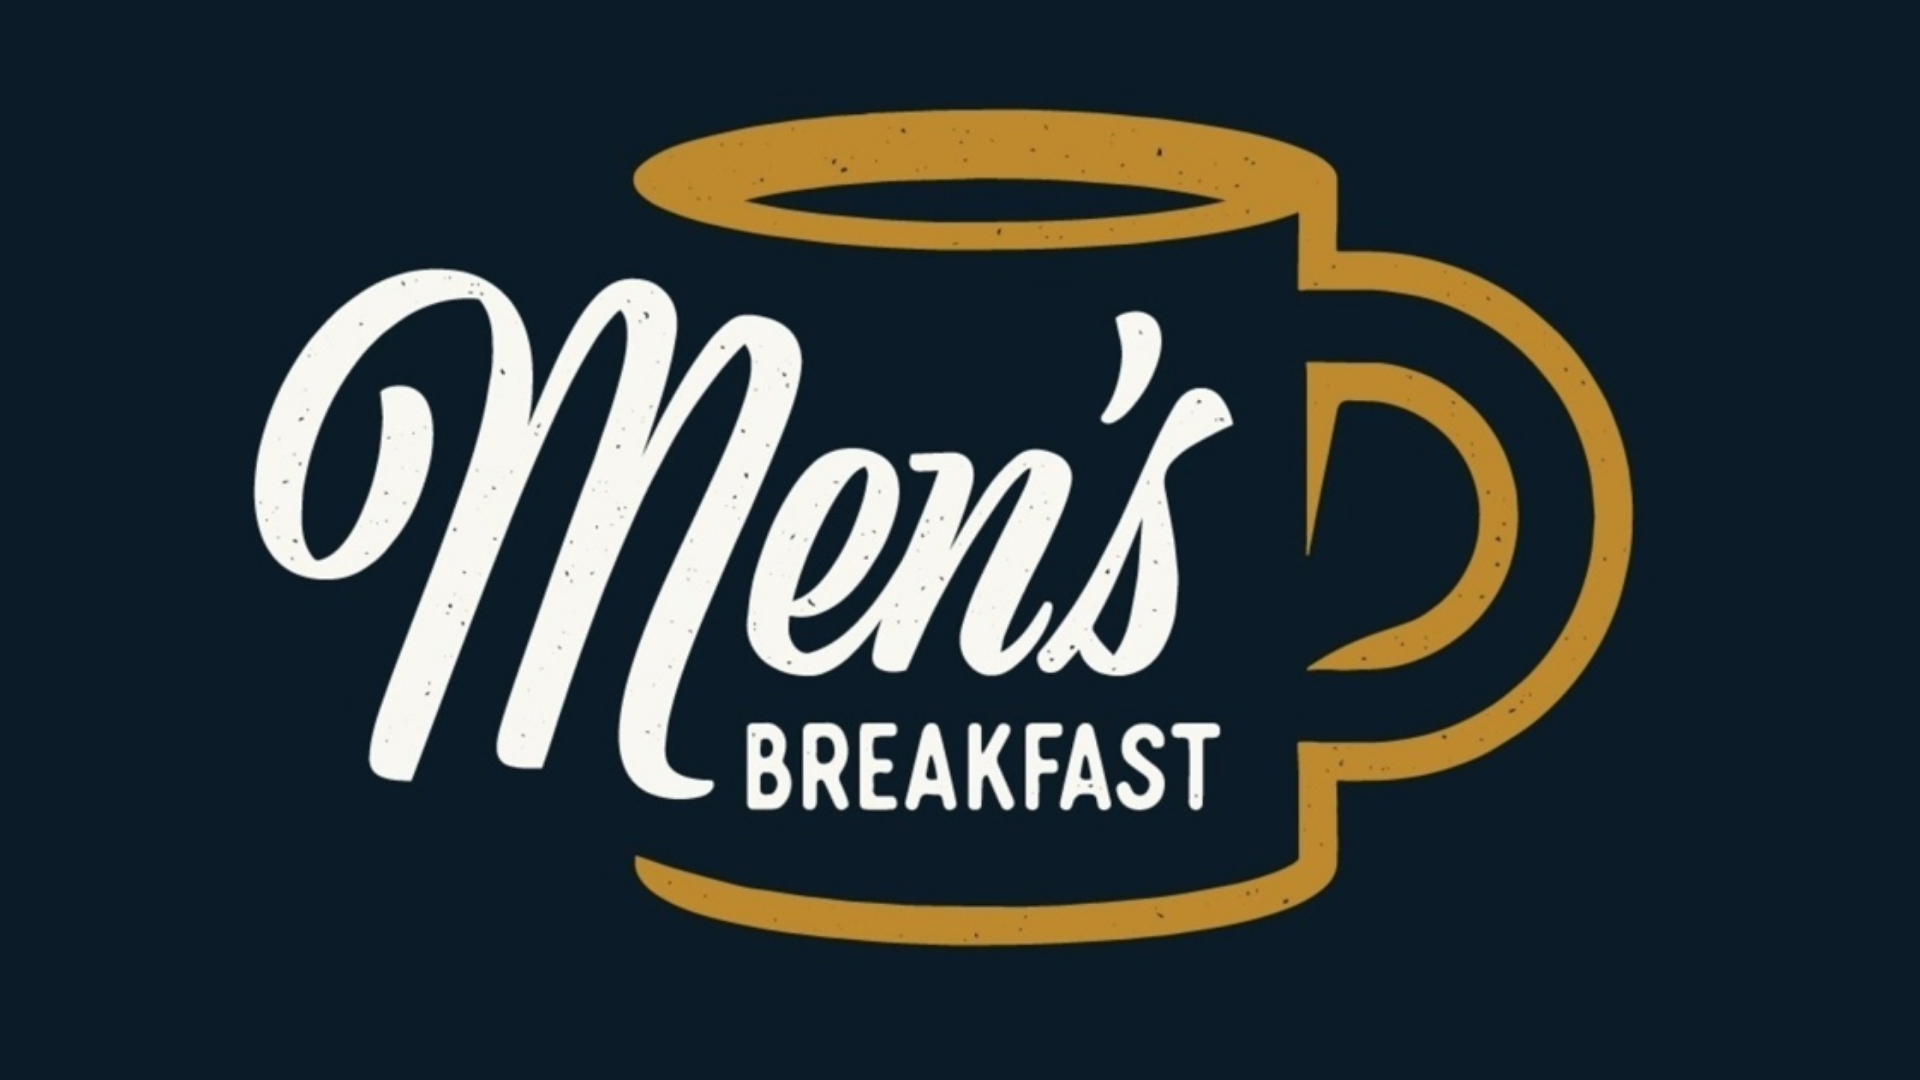 men's breakfast (4) image